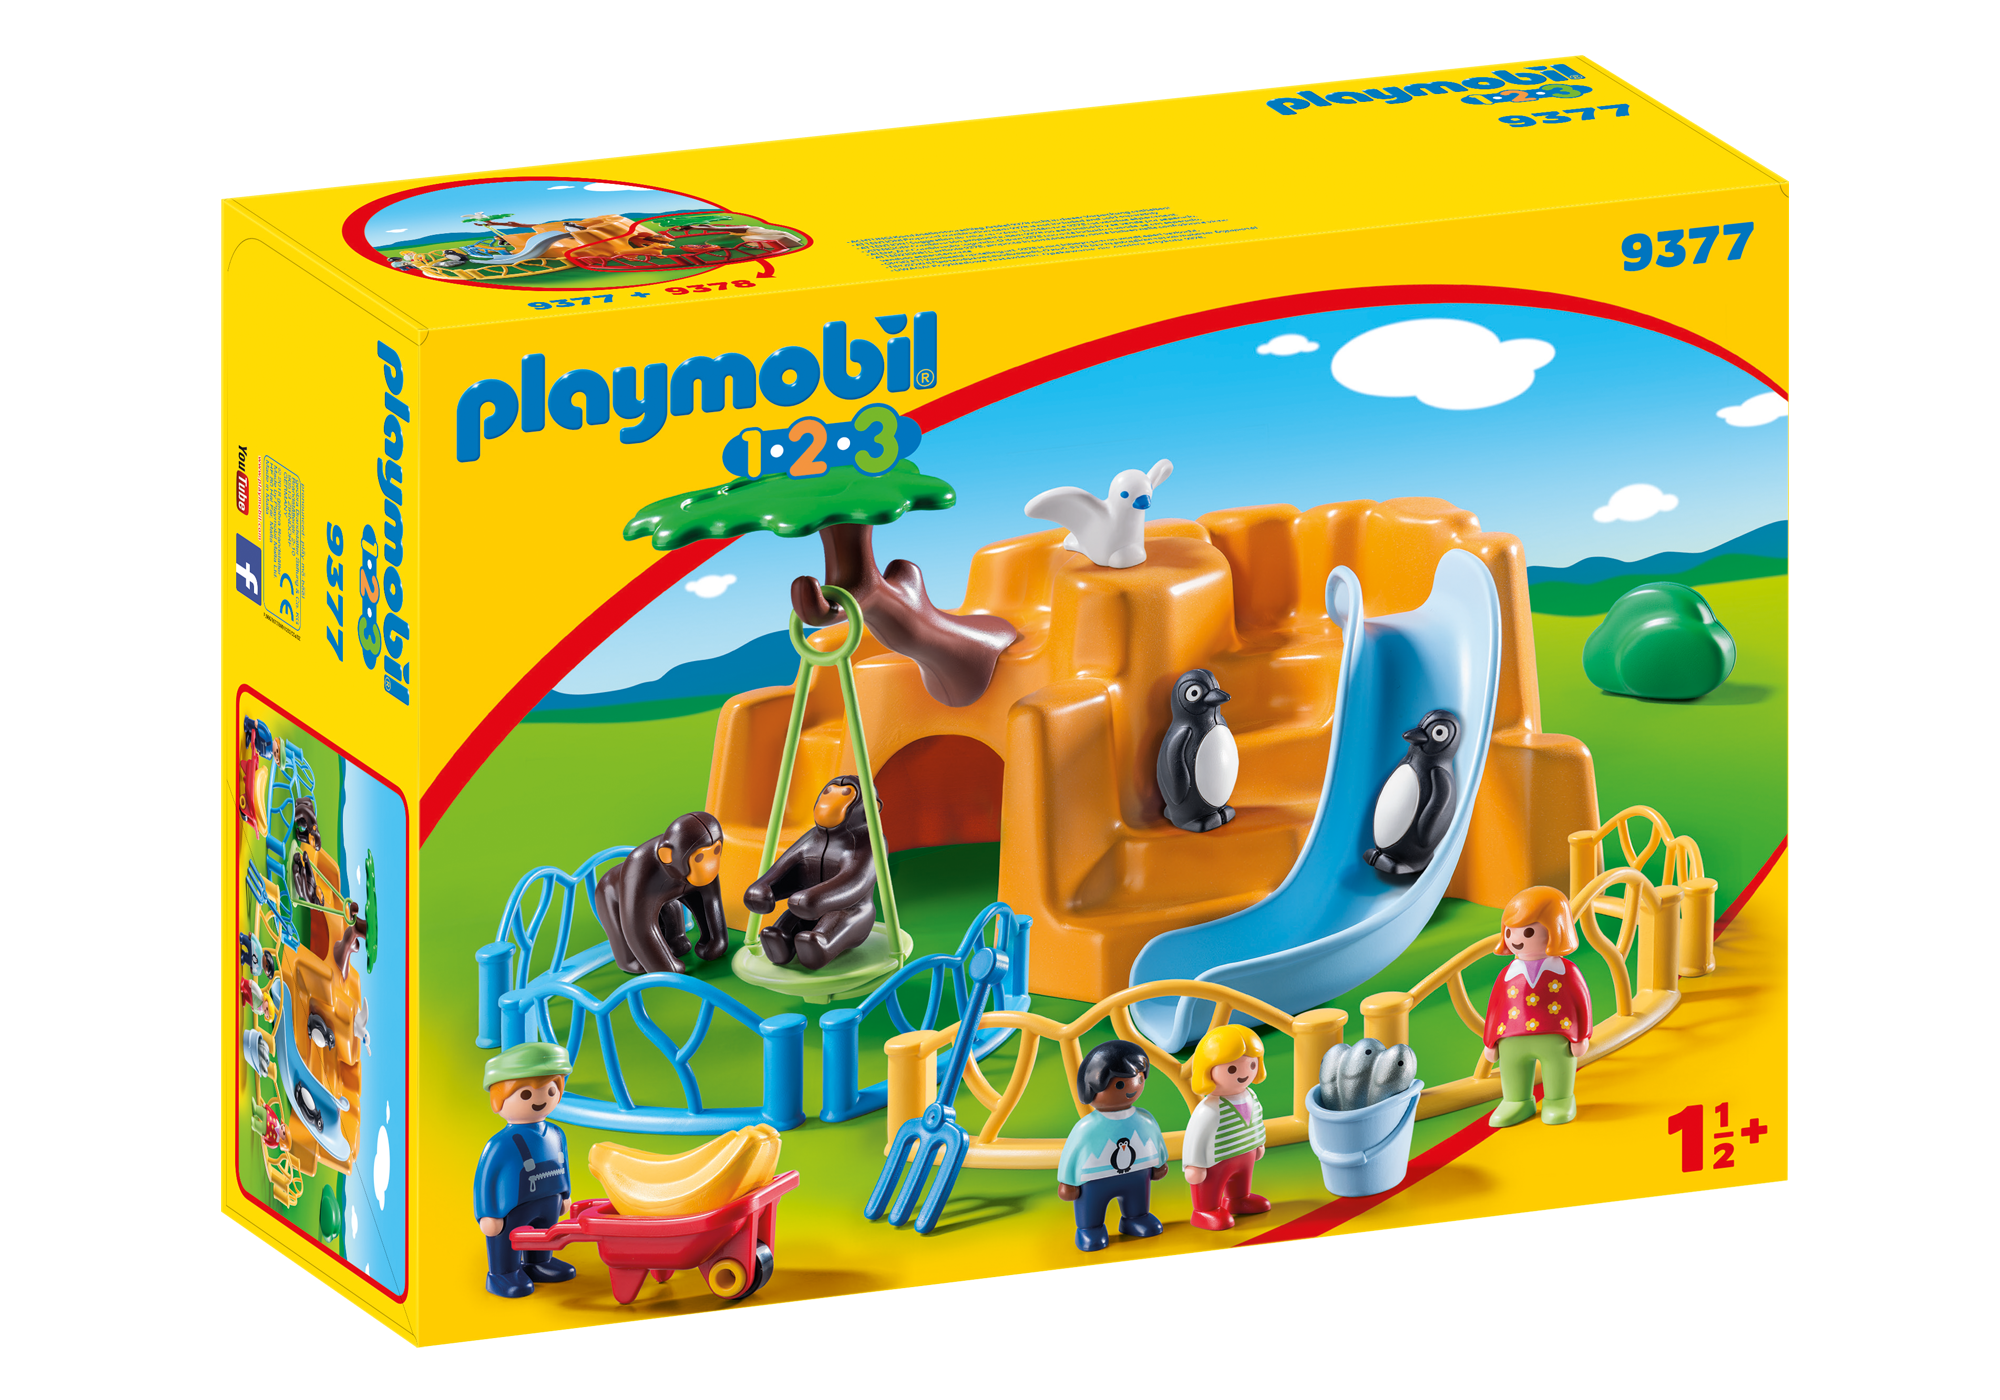 http://media.playmobil.com/i/playmobil/9377_product_box_front/Zoo 1.2.3